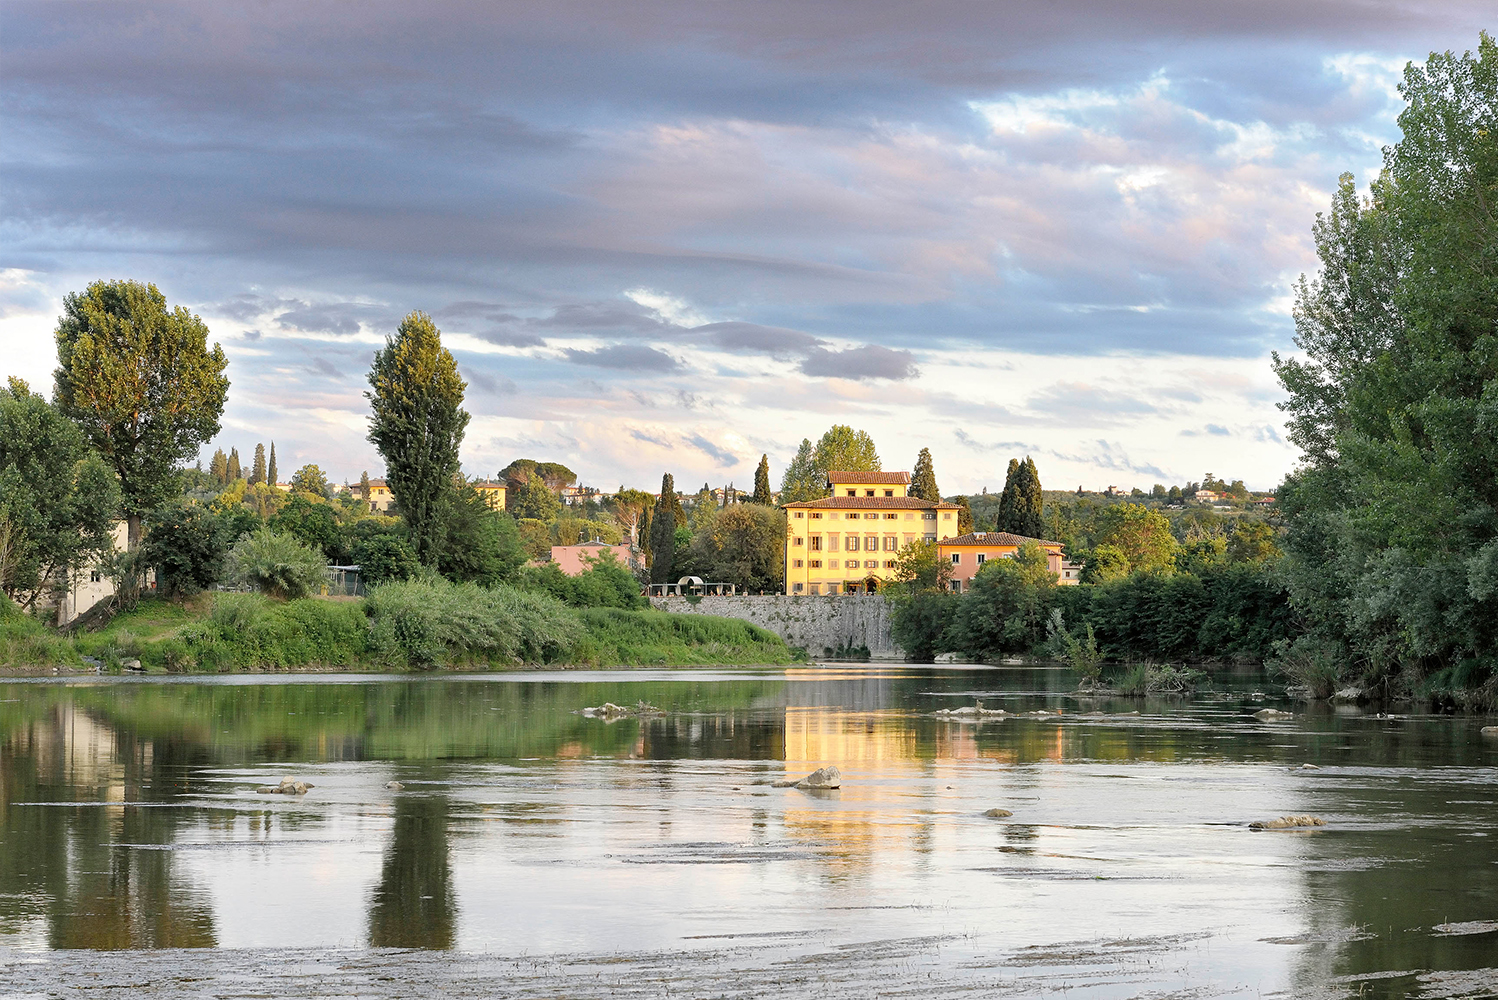 The property overlooks the Arno River and Chianti Valley.